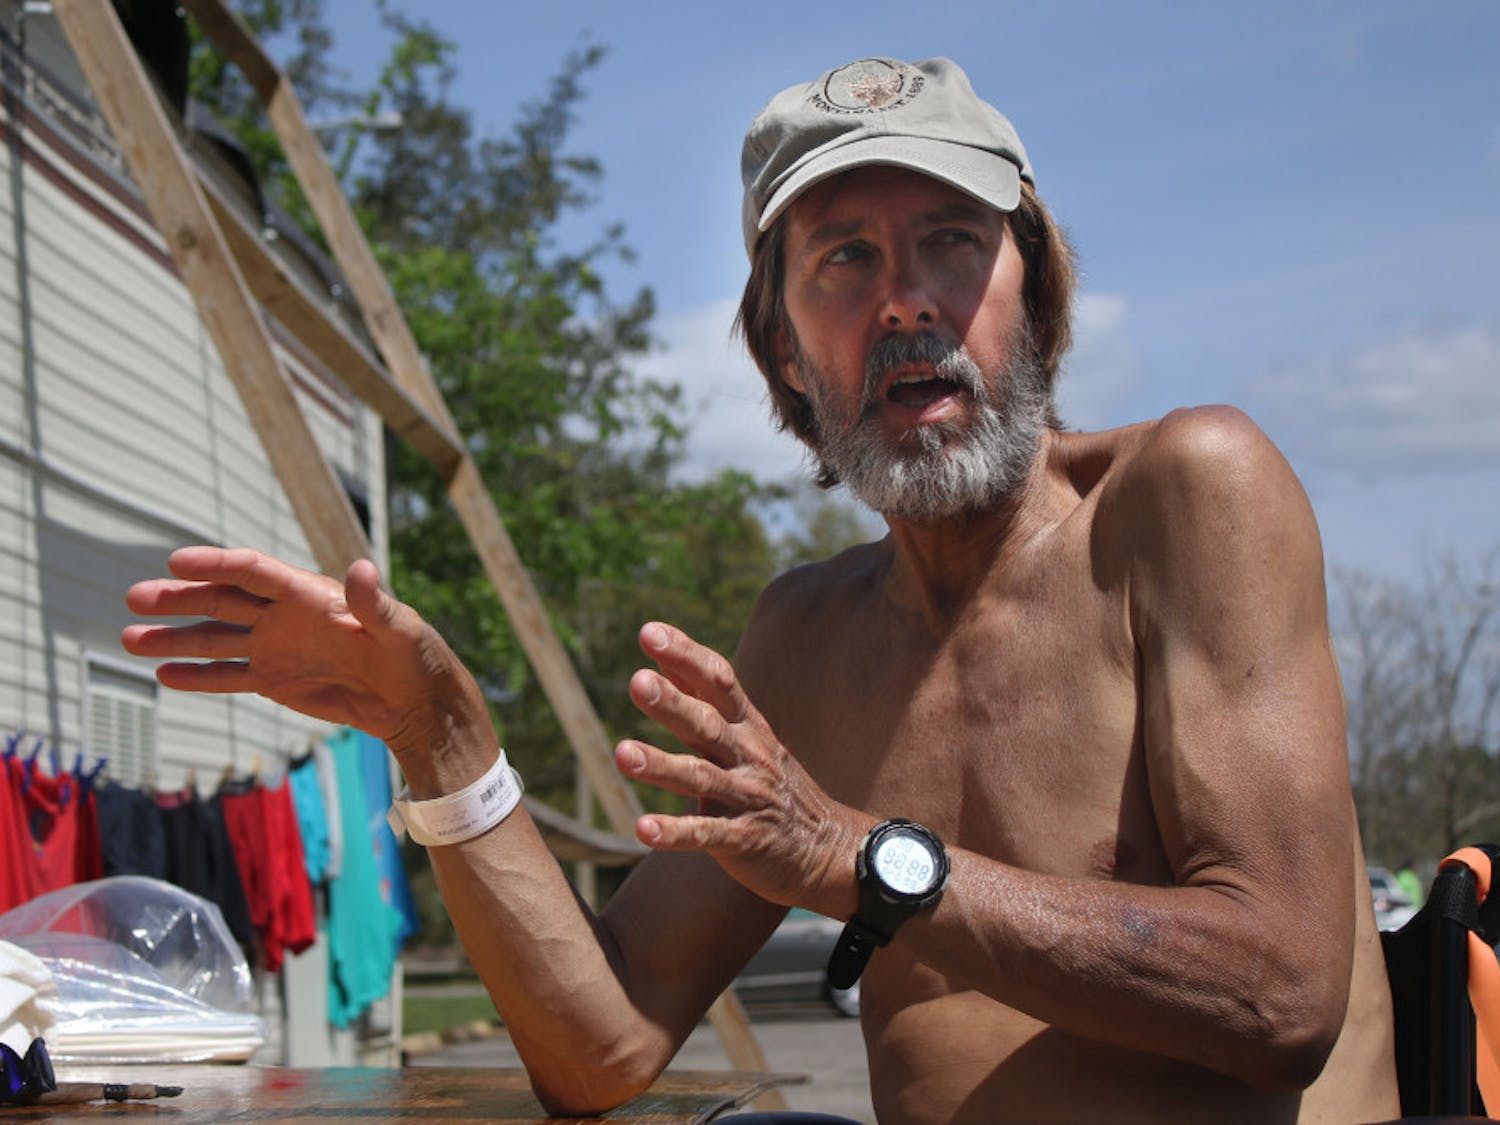 In Dignity Village, just outside the main gate of GRACE Marketplace, Mark Venzke, 62, describes his plans to renovate his motorhome so he can move out of the 6-foot tent where he currently sleeps.